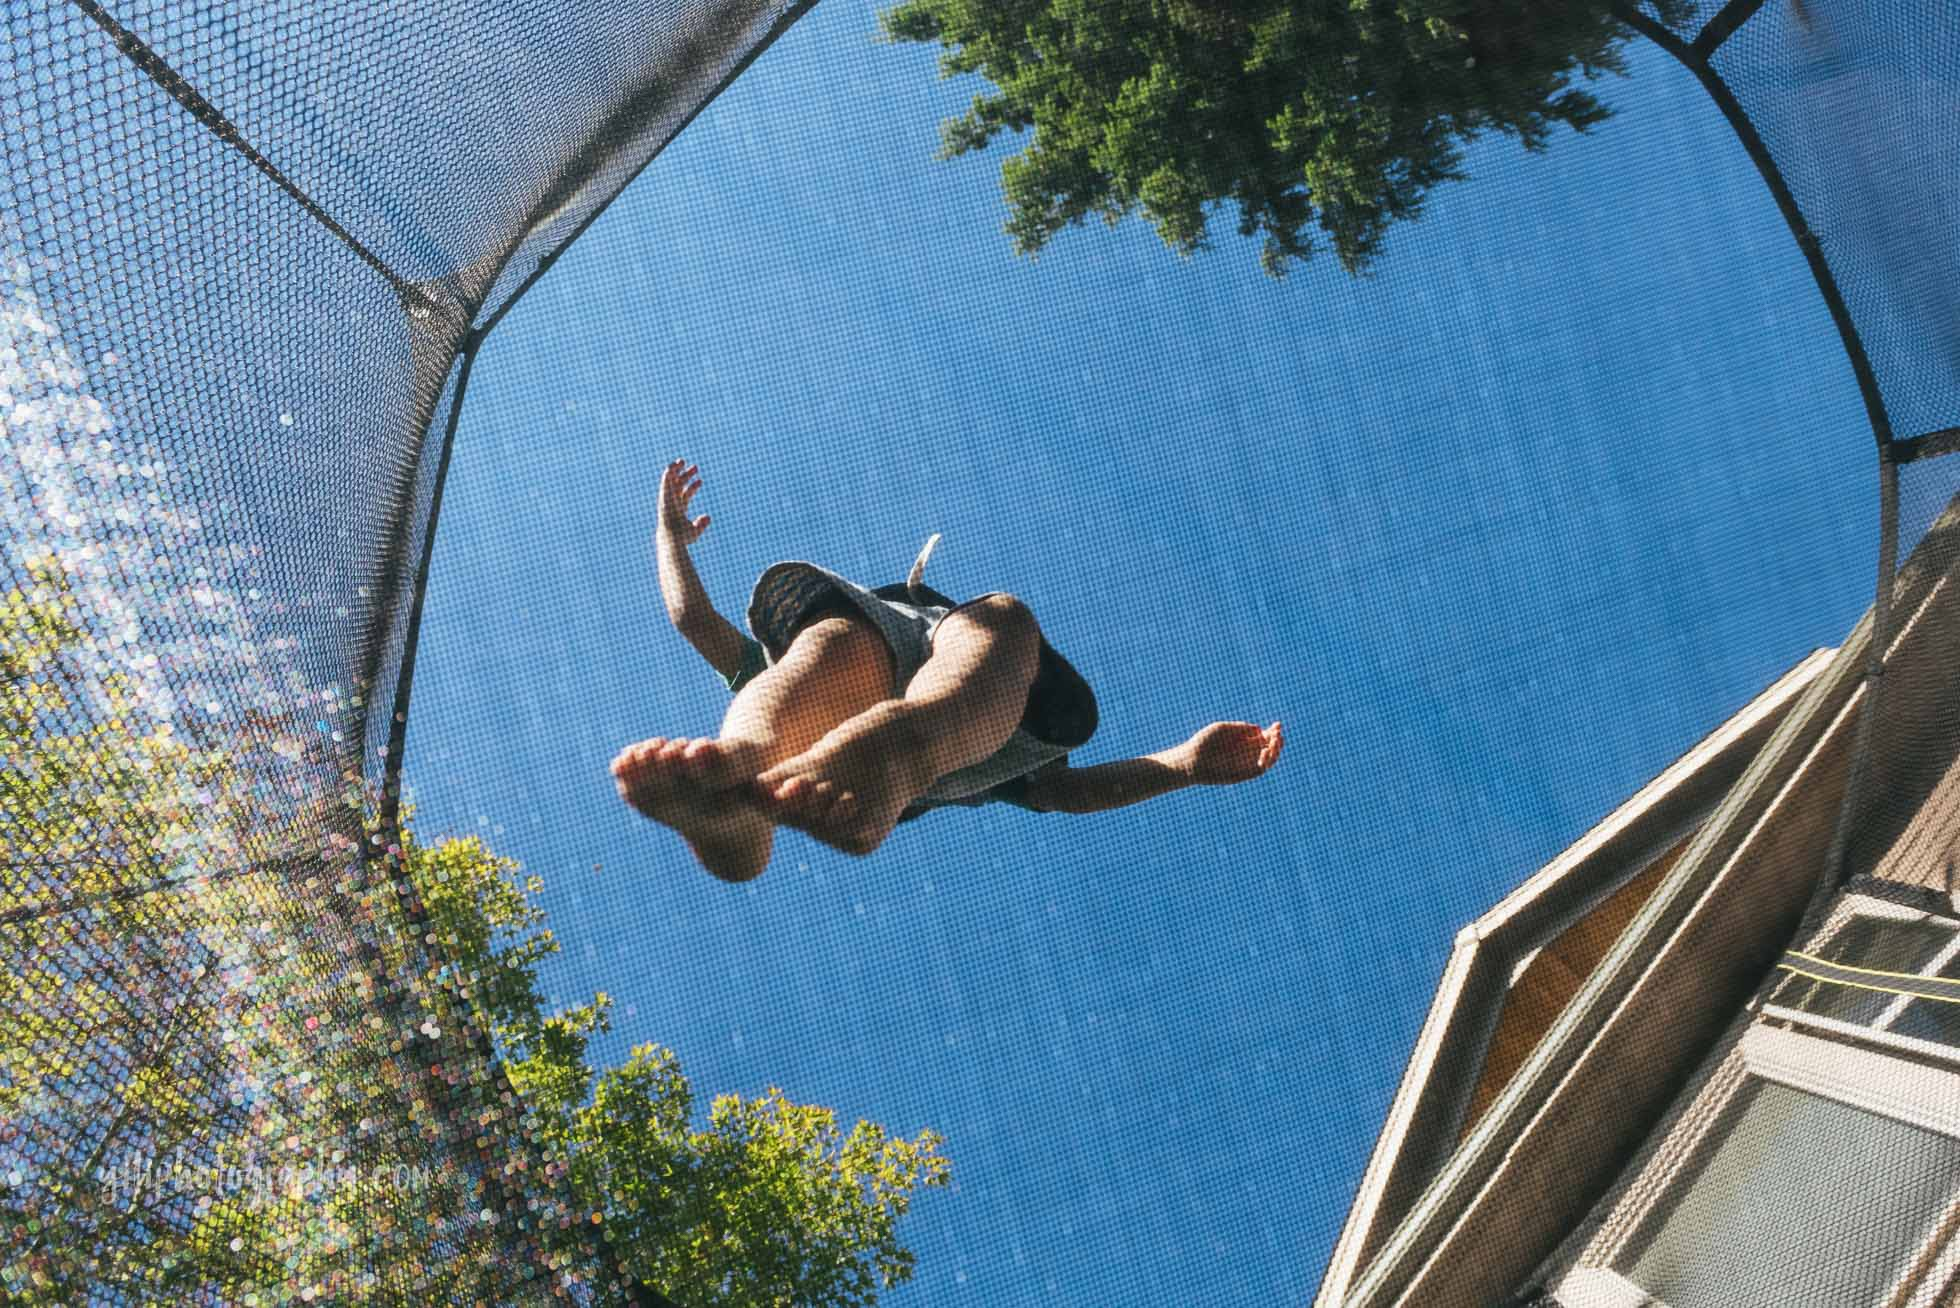 view of little boy bouncing on trampoline shot from below